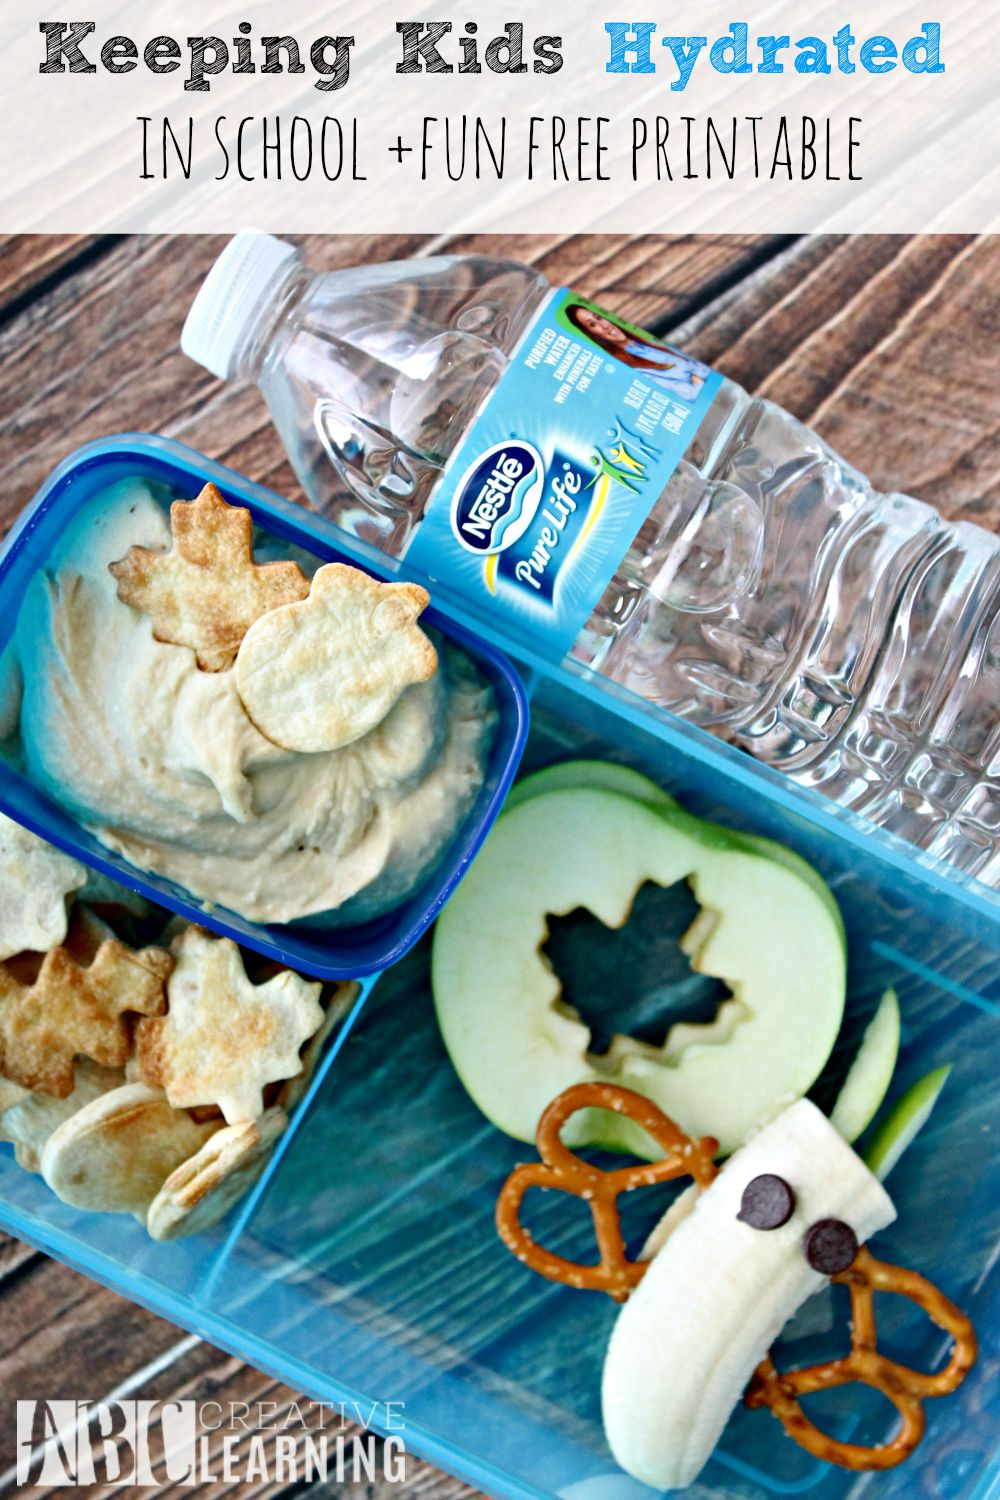 Keeping Kids Hydrated in School + Free Printables